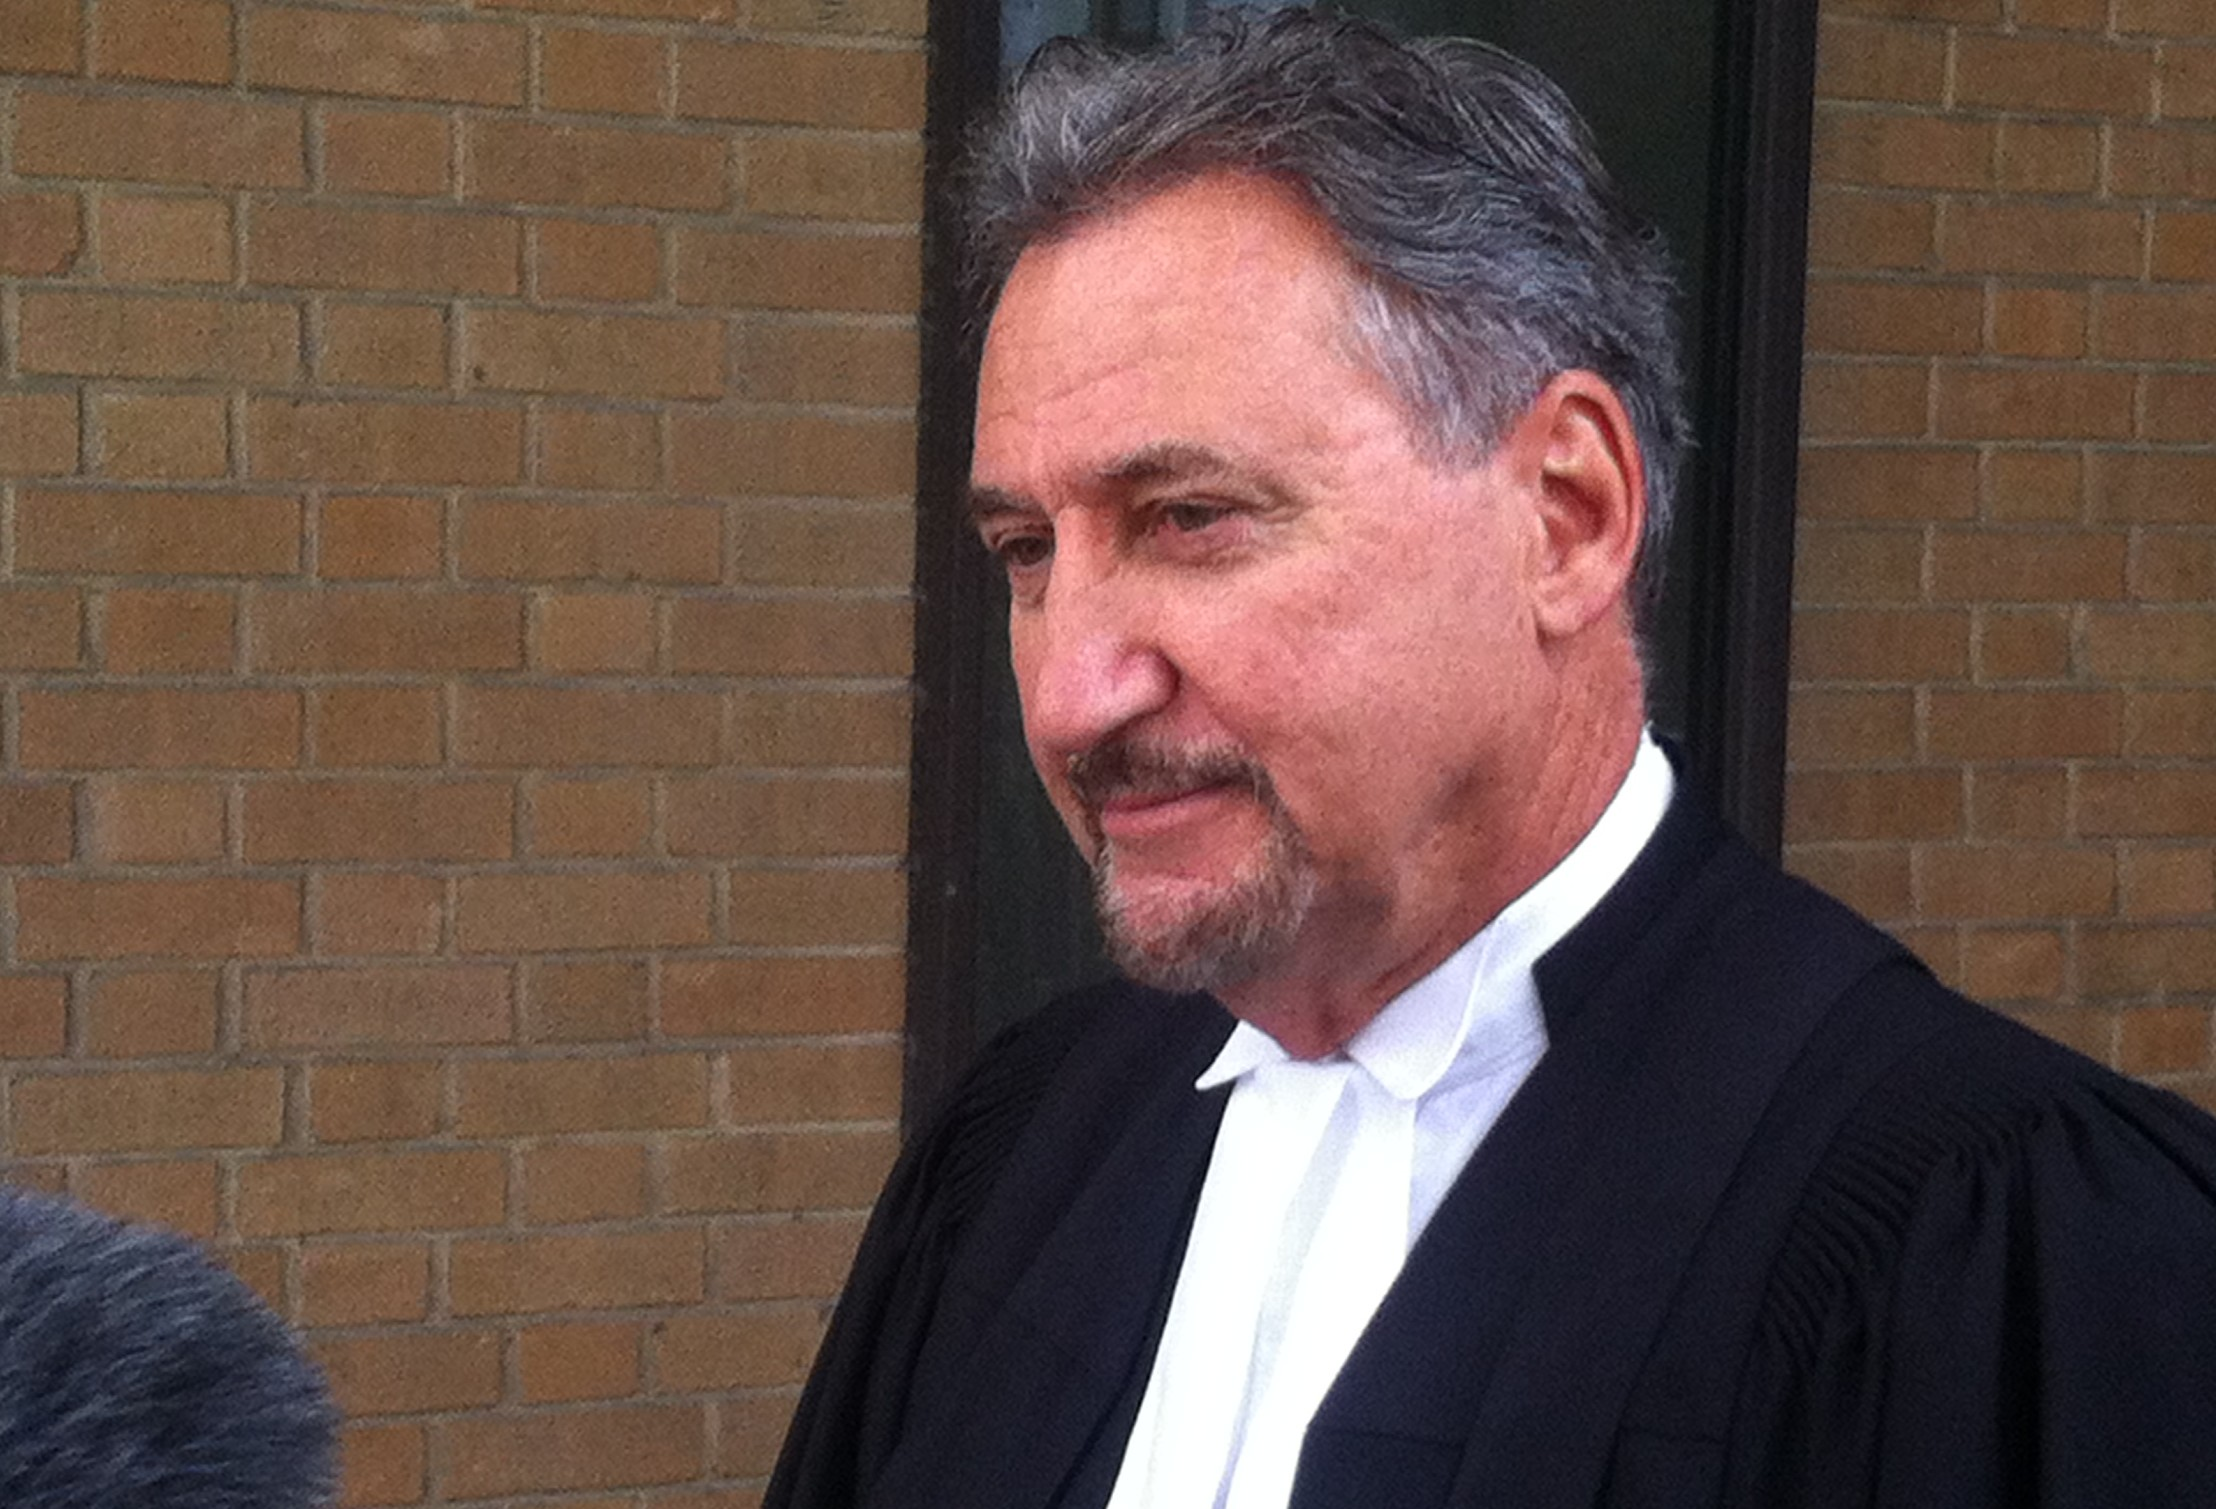 BlackburnNews.com file photo of defence lawyer Patrick Ducharme, July 22, 2015. (Photo by Jason Viau)